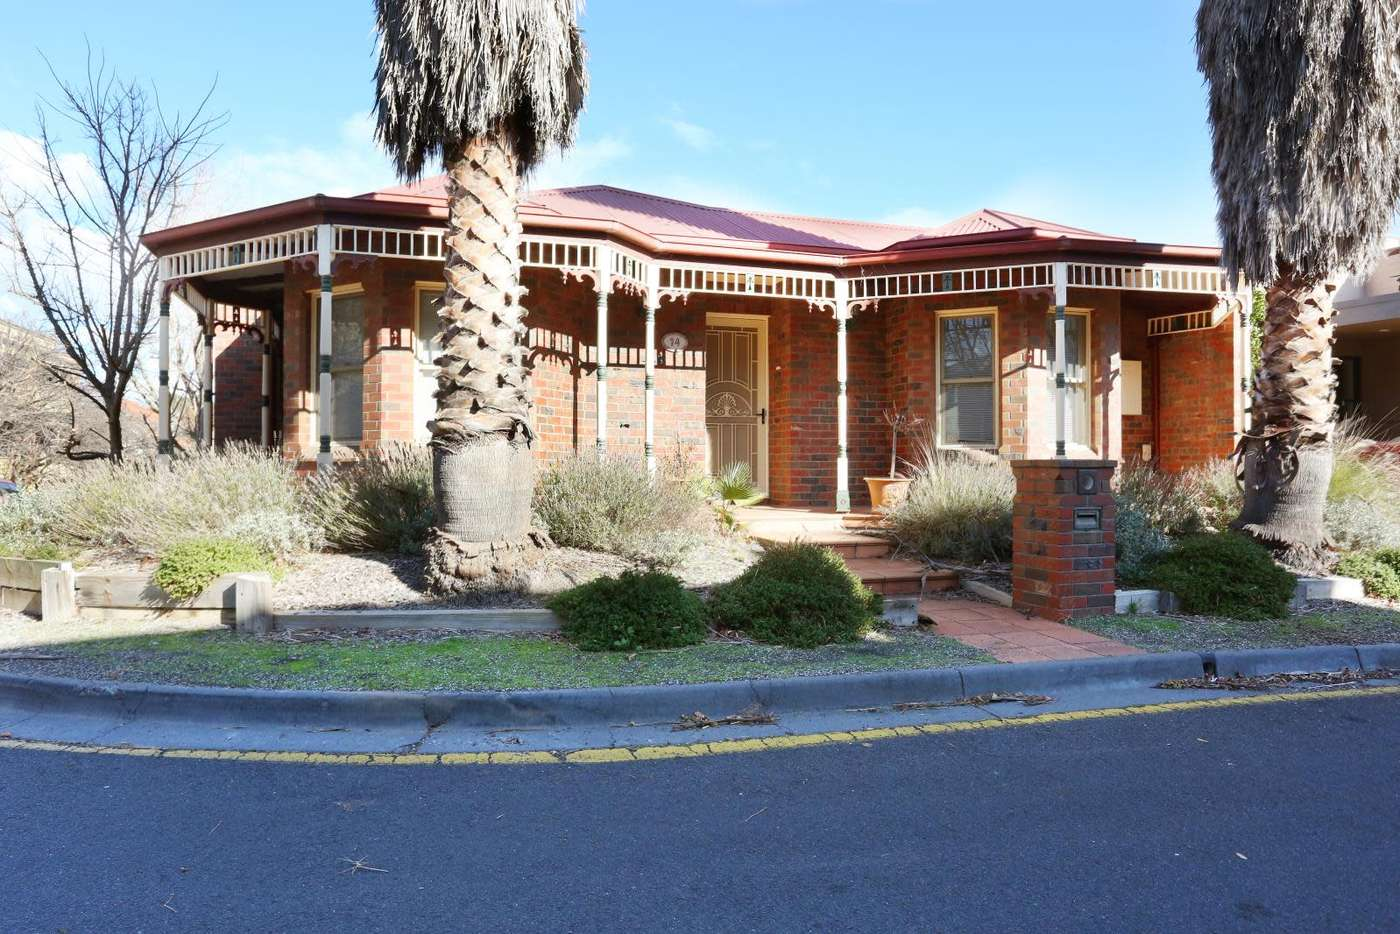 Main view of Homely house listing, 14 Zoe Circuit, Northcote VIC 3070